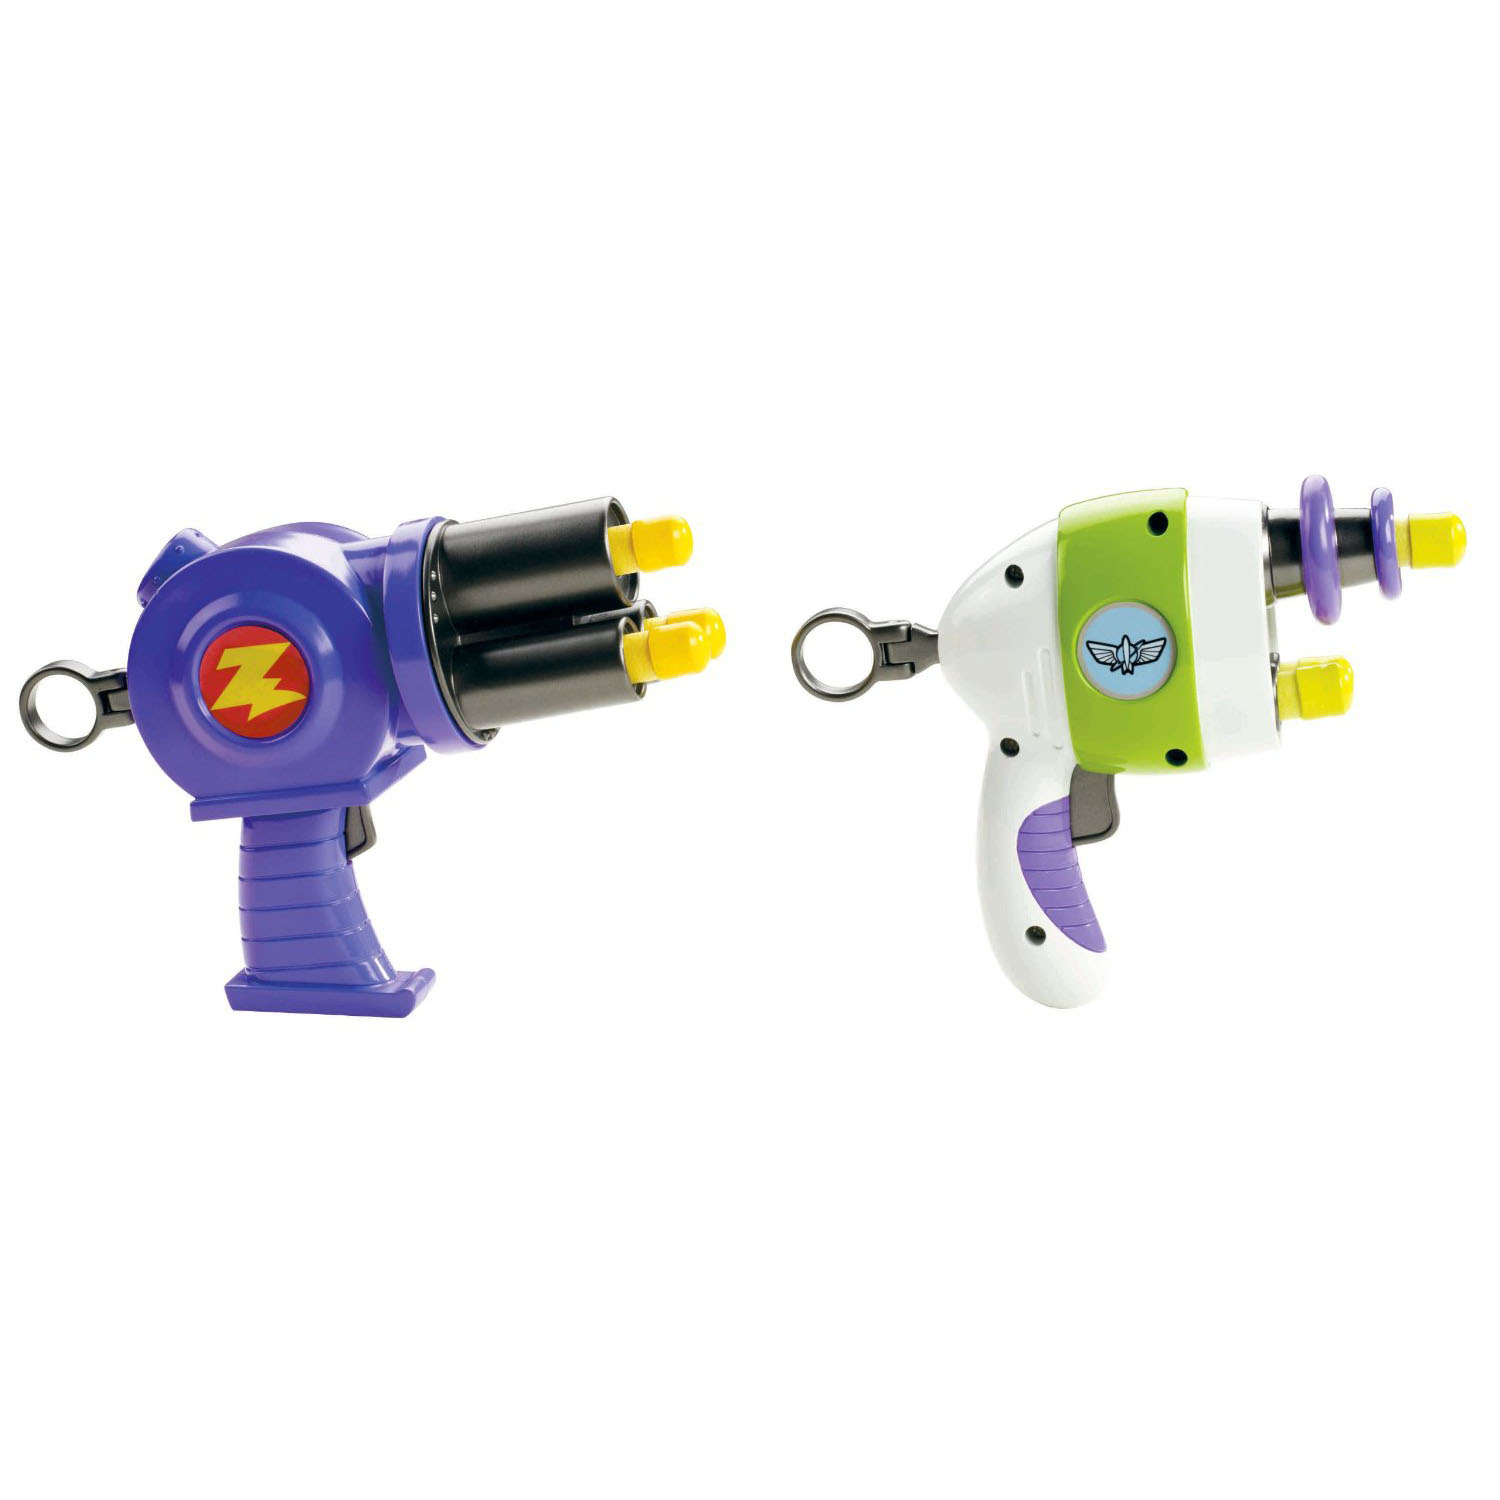 Toy Story Toys - Battlinu0026#39; Blasters At ToyStop